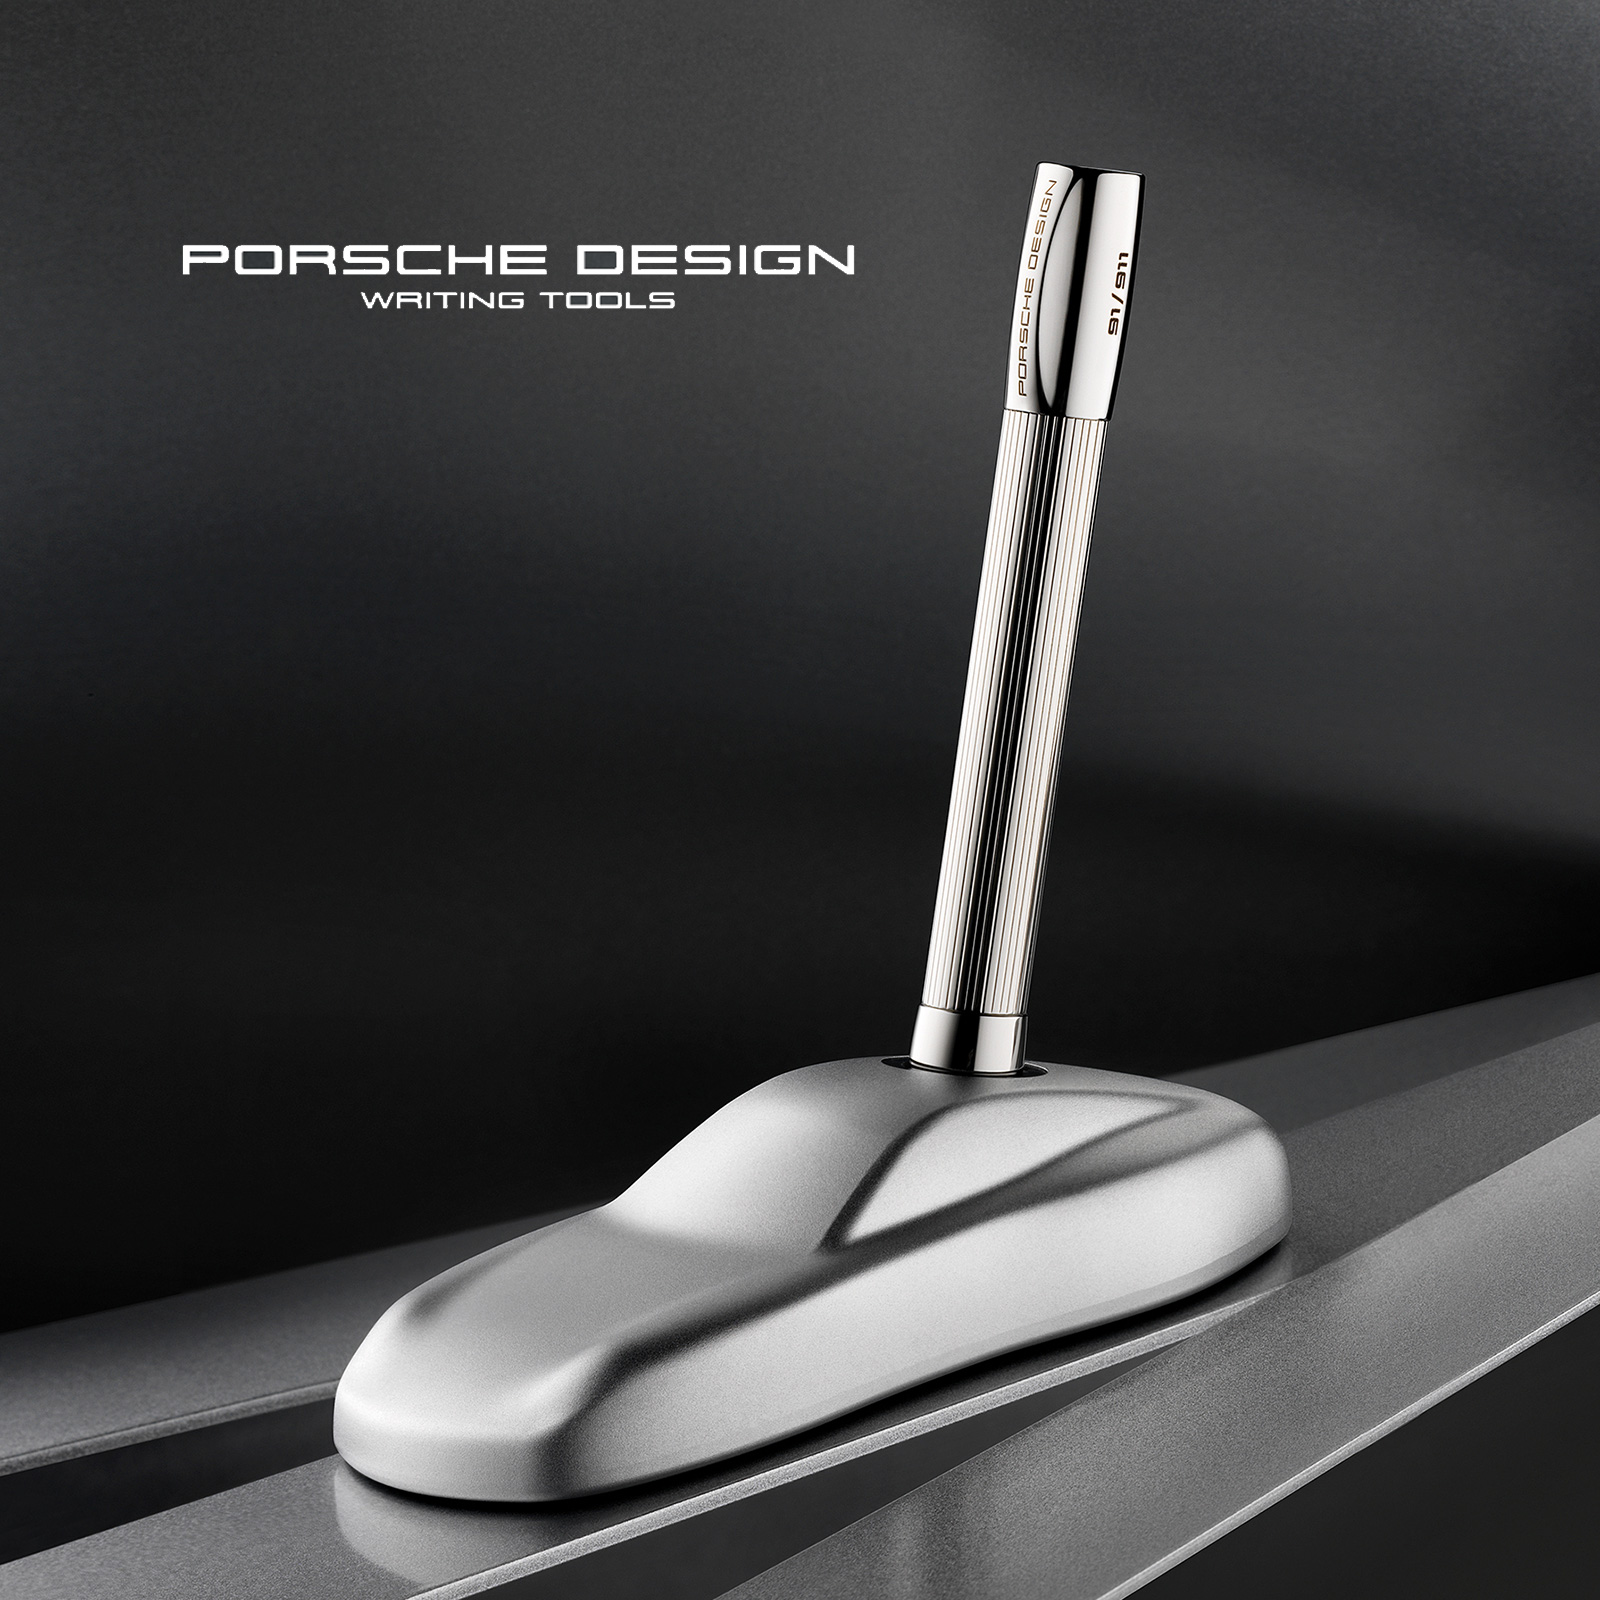 Porsche Design Shake Pen of the year 2017